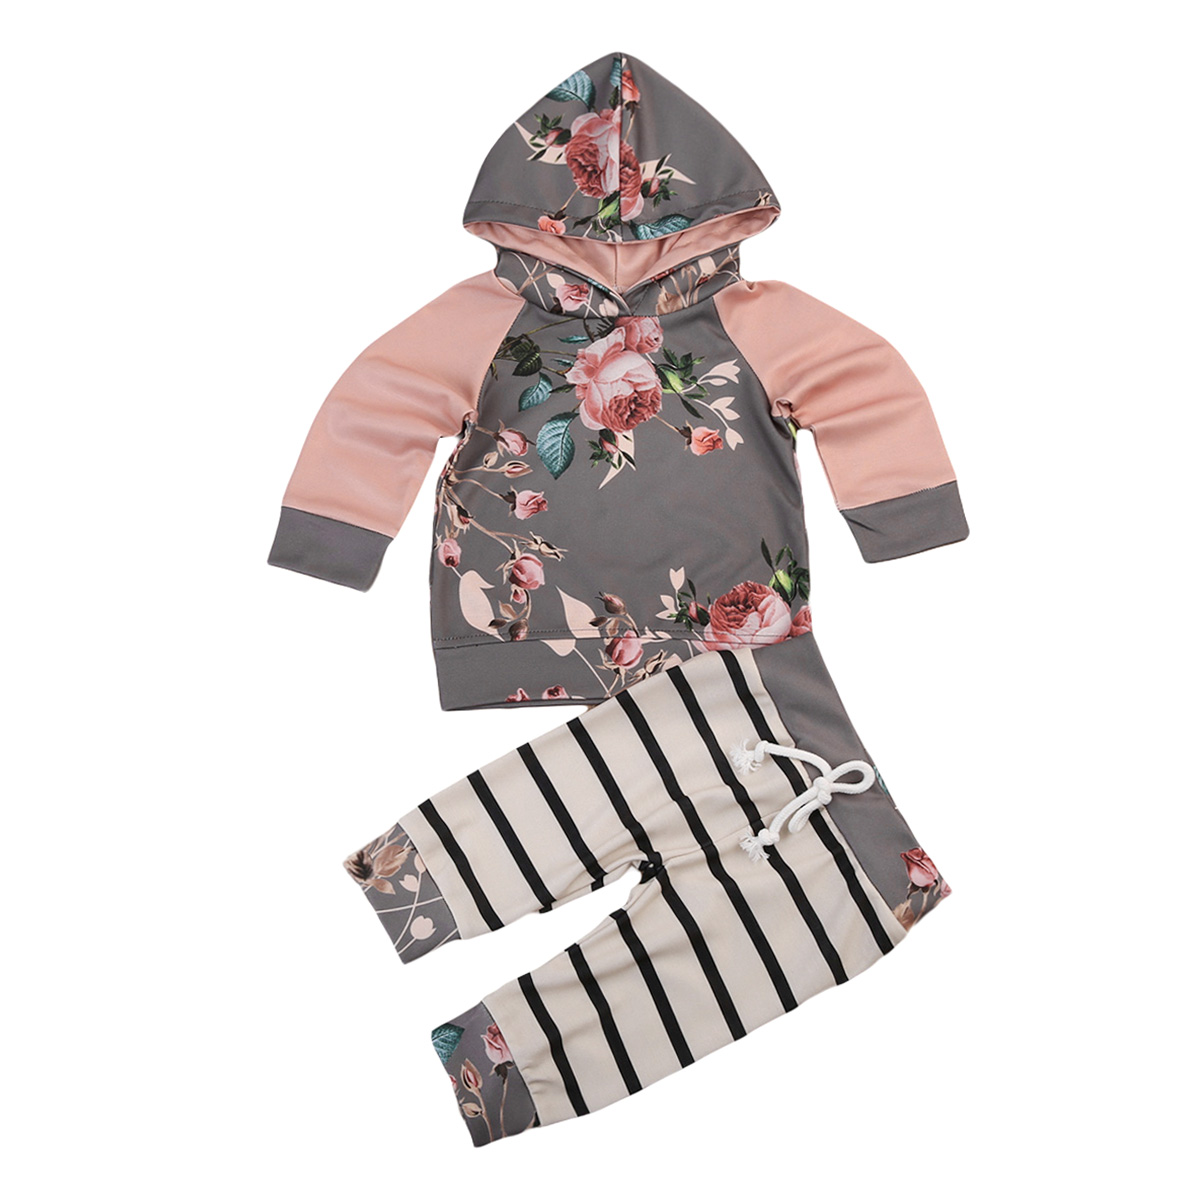 Baby Boys Chambray Effect Grey Winter Snowsuit Pramsuit Jacket 0-9 Months